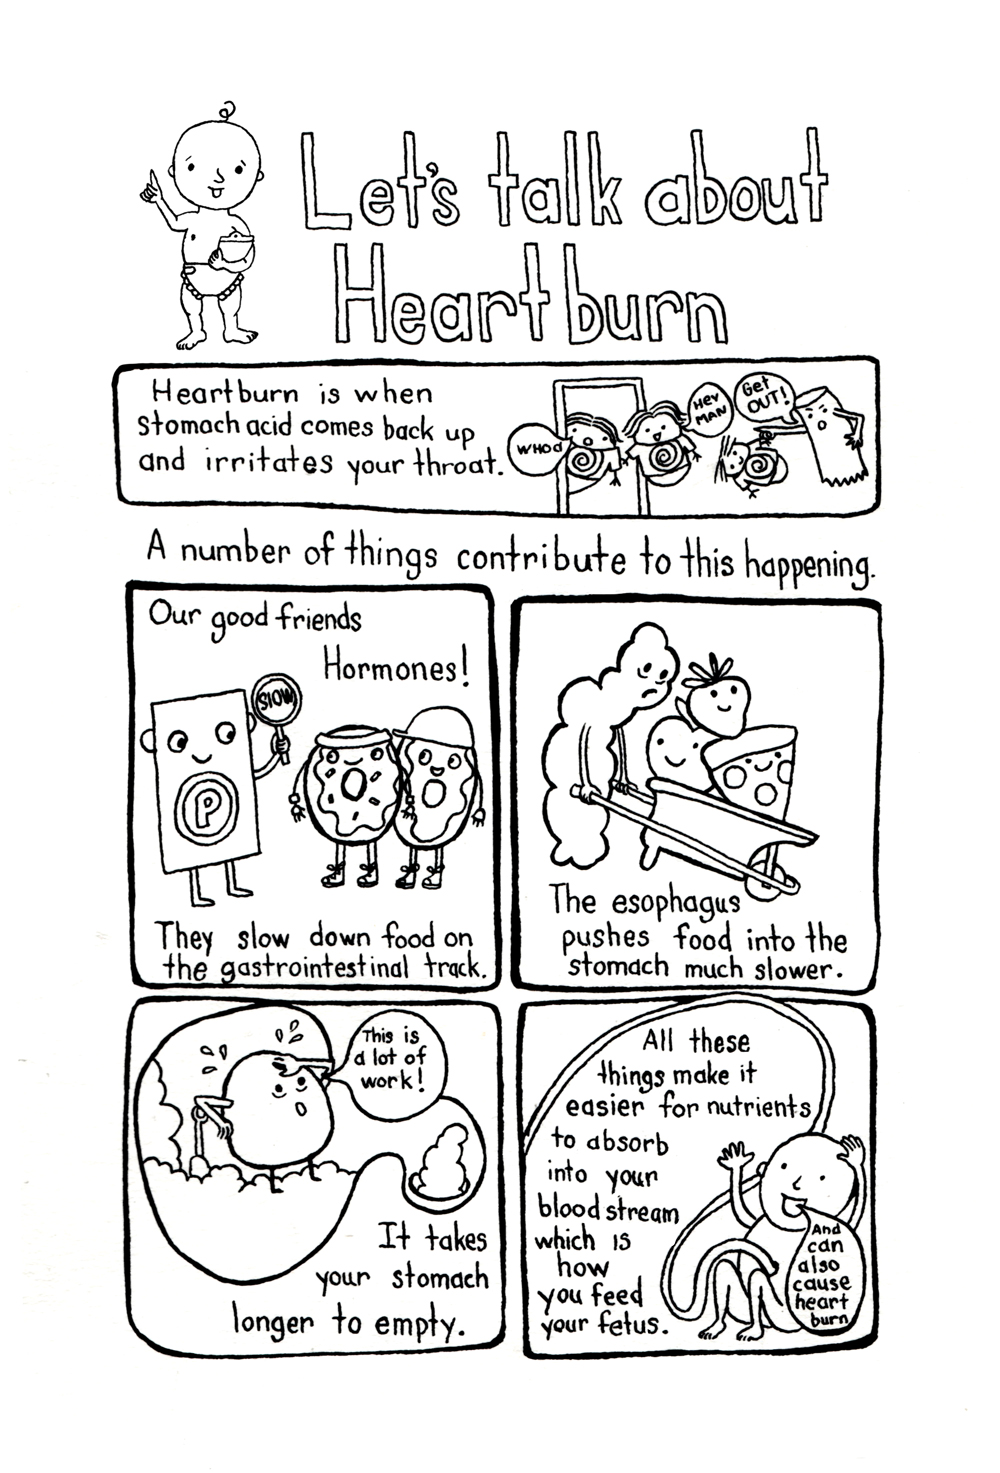 Heartburn_Ink_scan.jpg